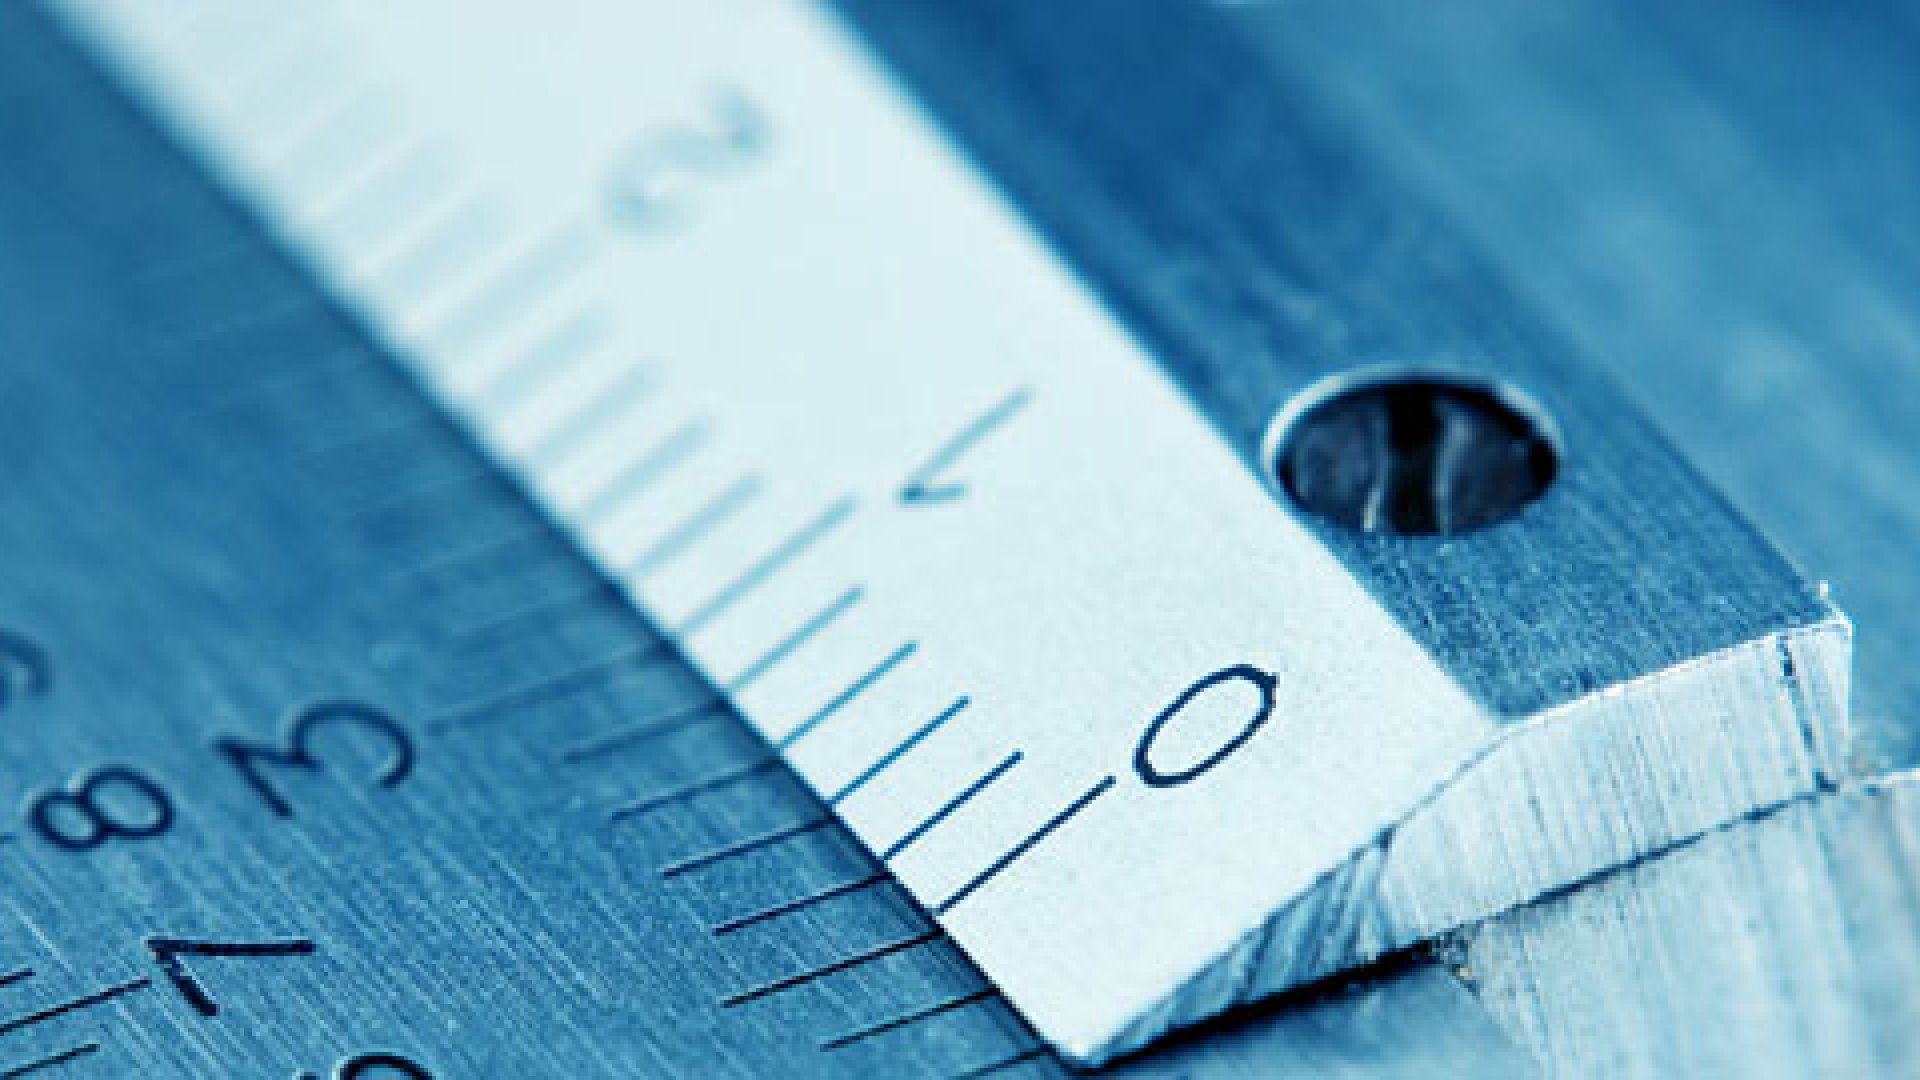 6 Ways to Measure the Success of Any Project